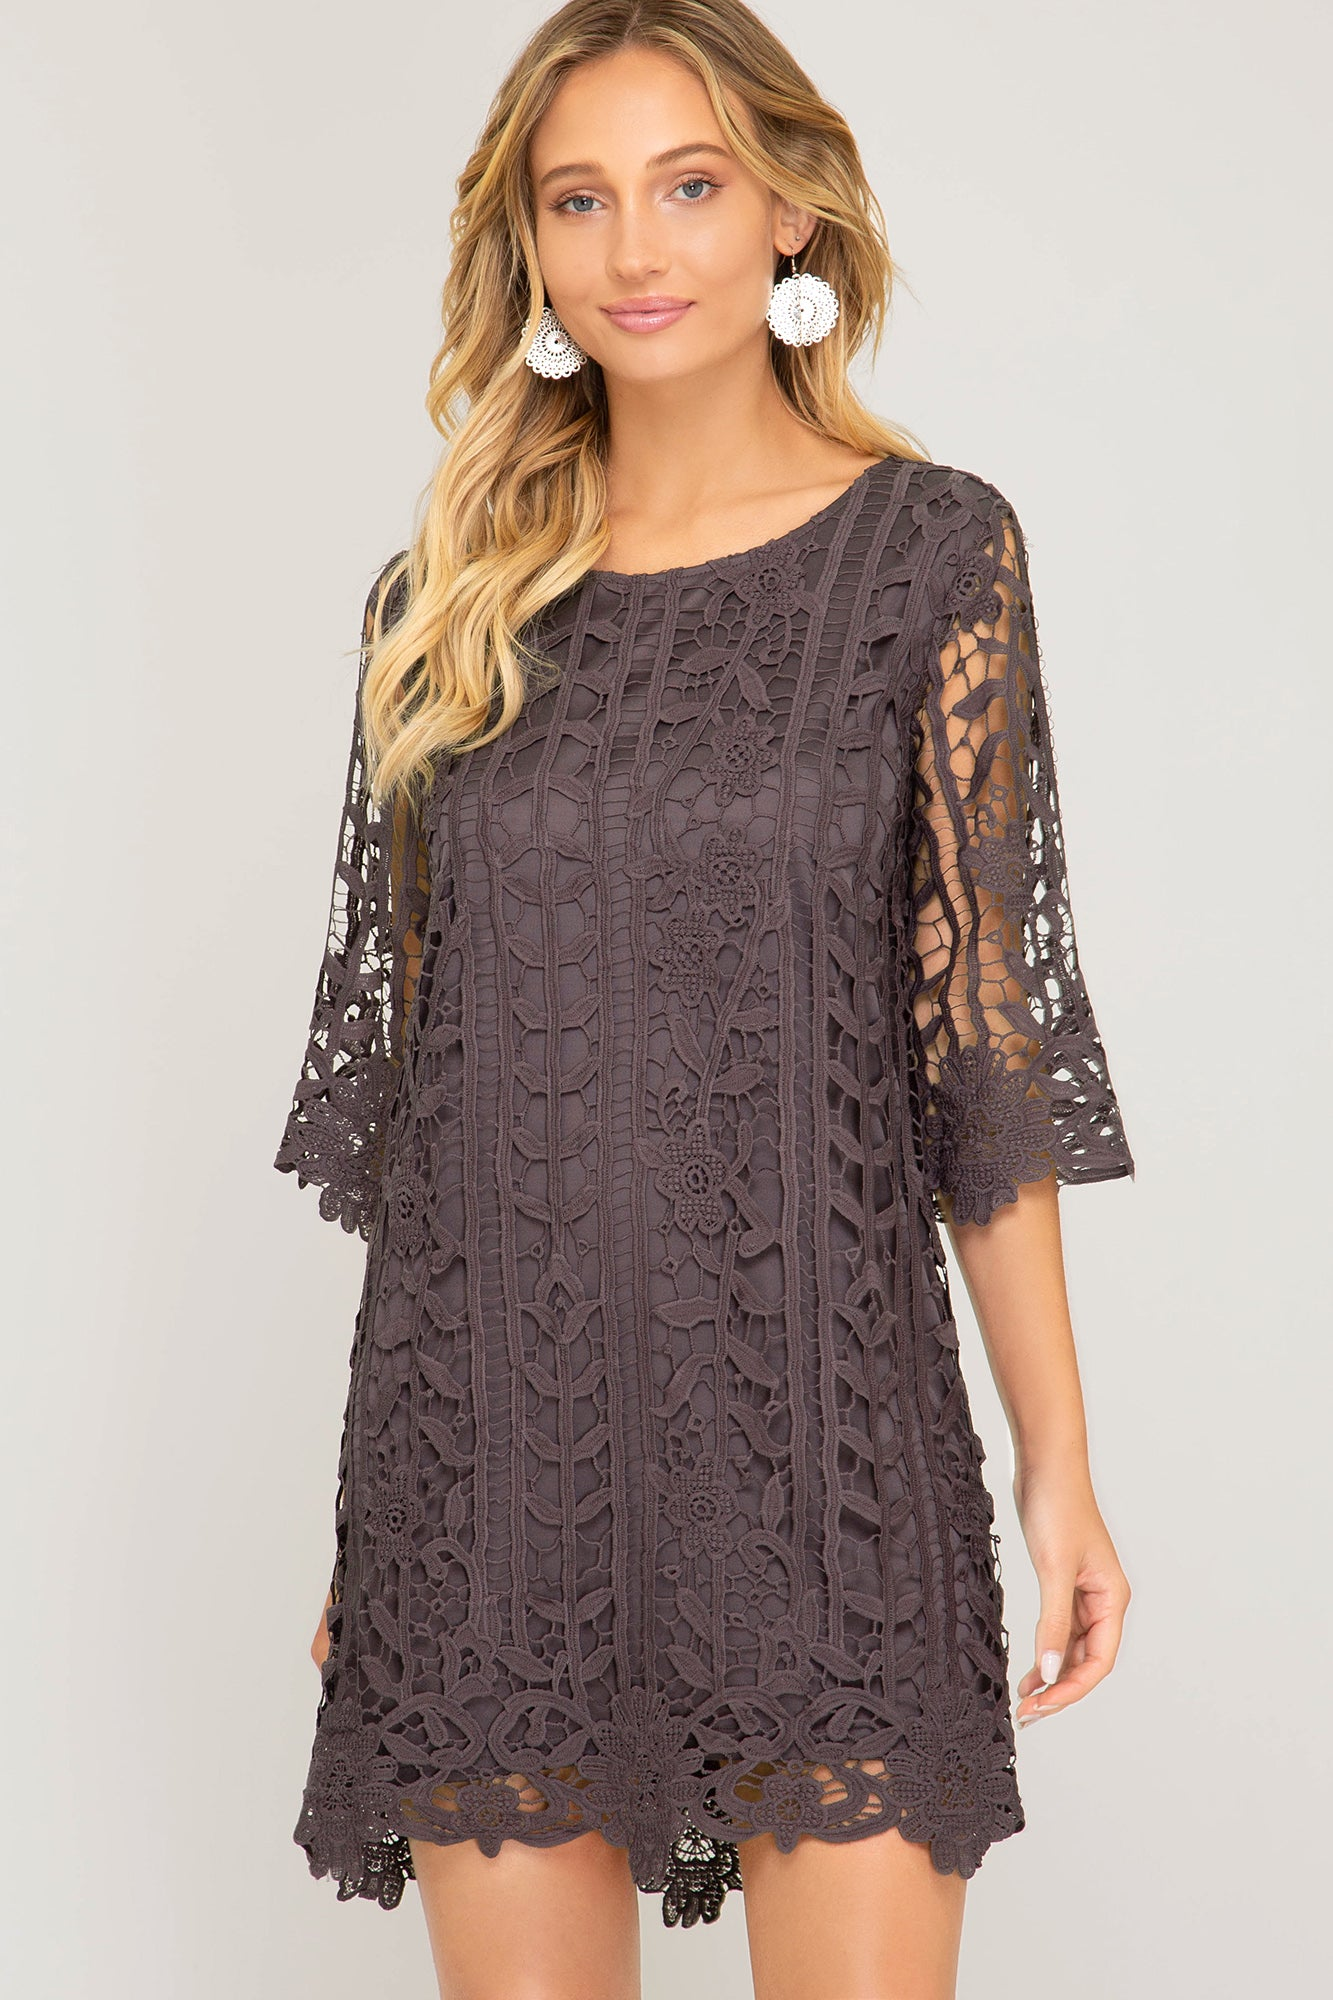 The Maria Lace Dress